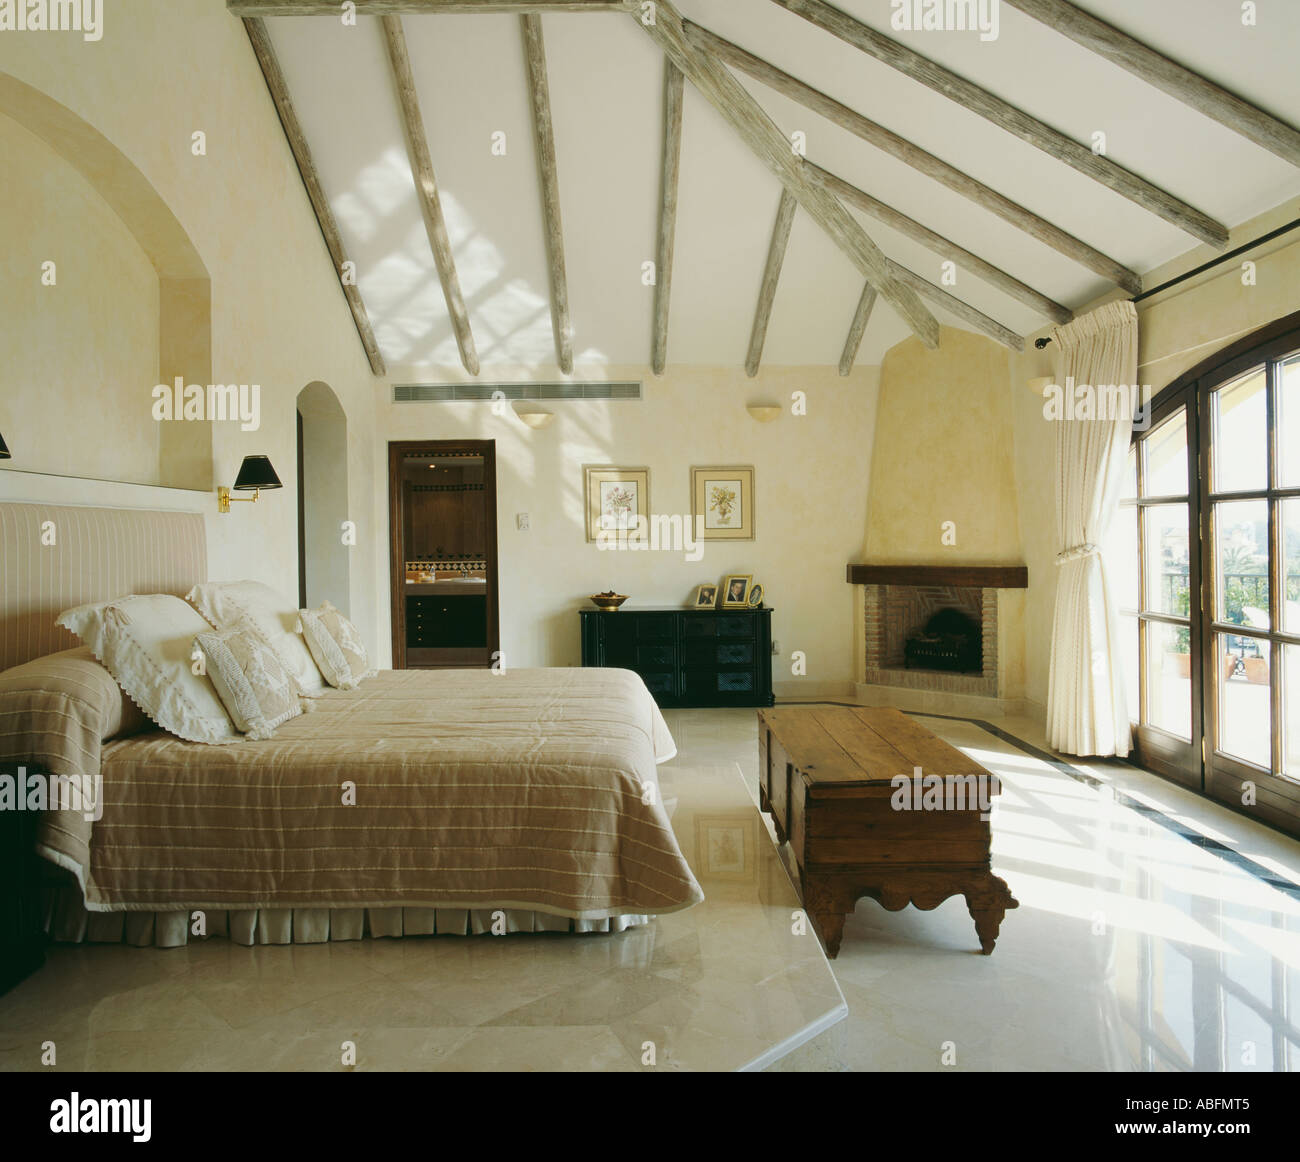 Attic conversion bedroom in loft space stock photo - How to convert a loft into a bedroom ...